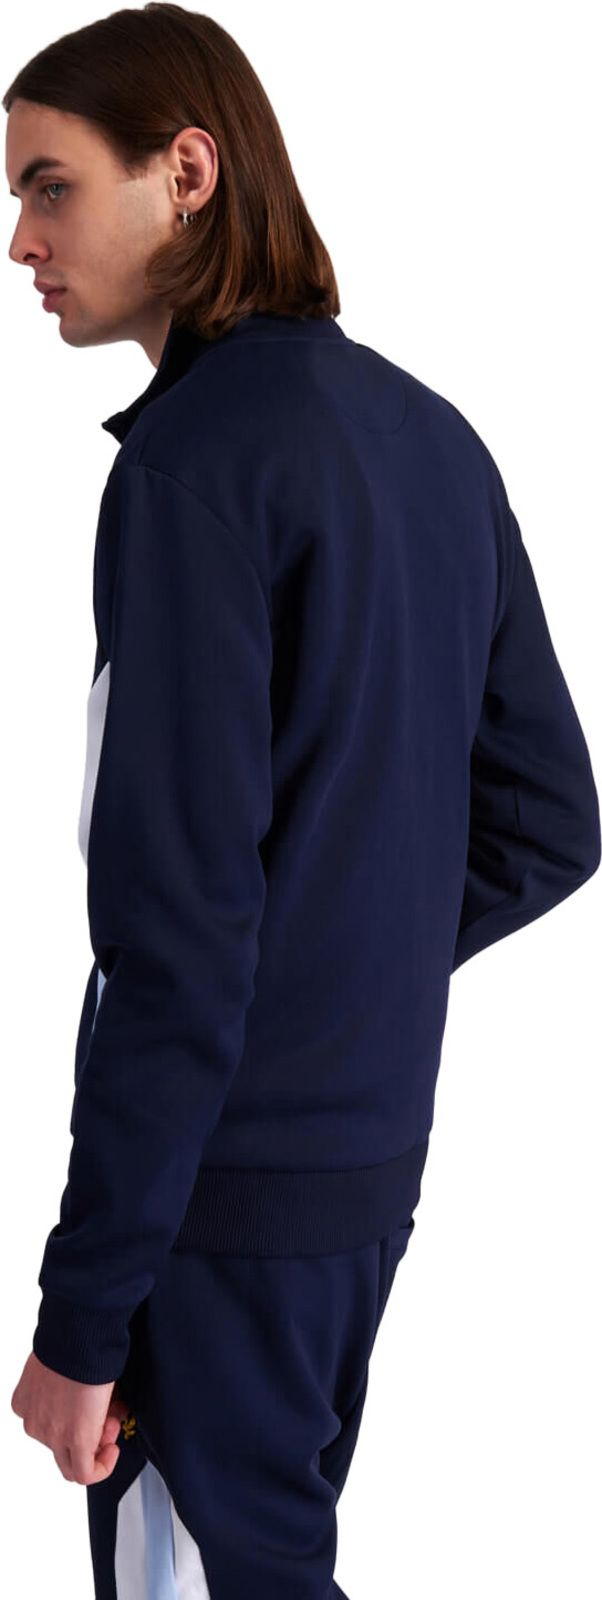 Lyle & Scott Archive Panel Track Top Navy